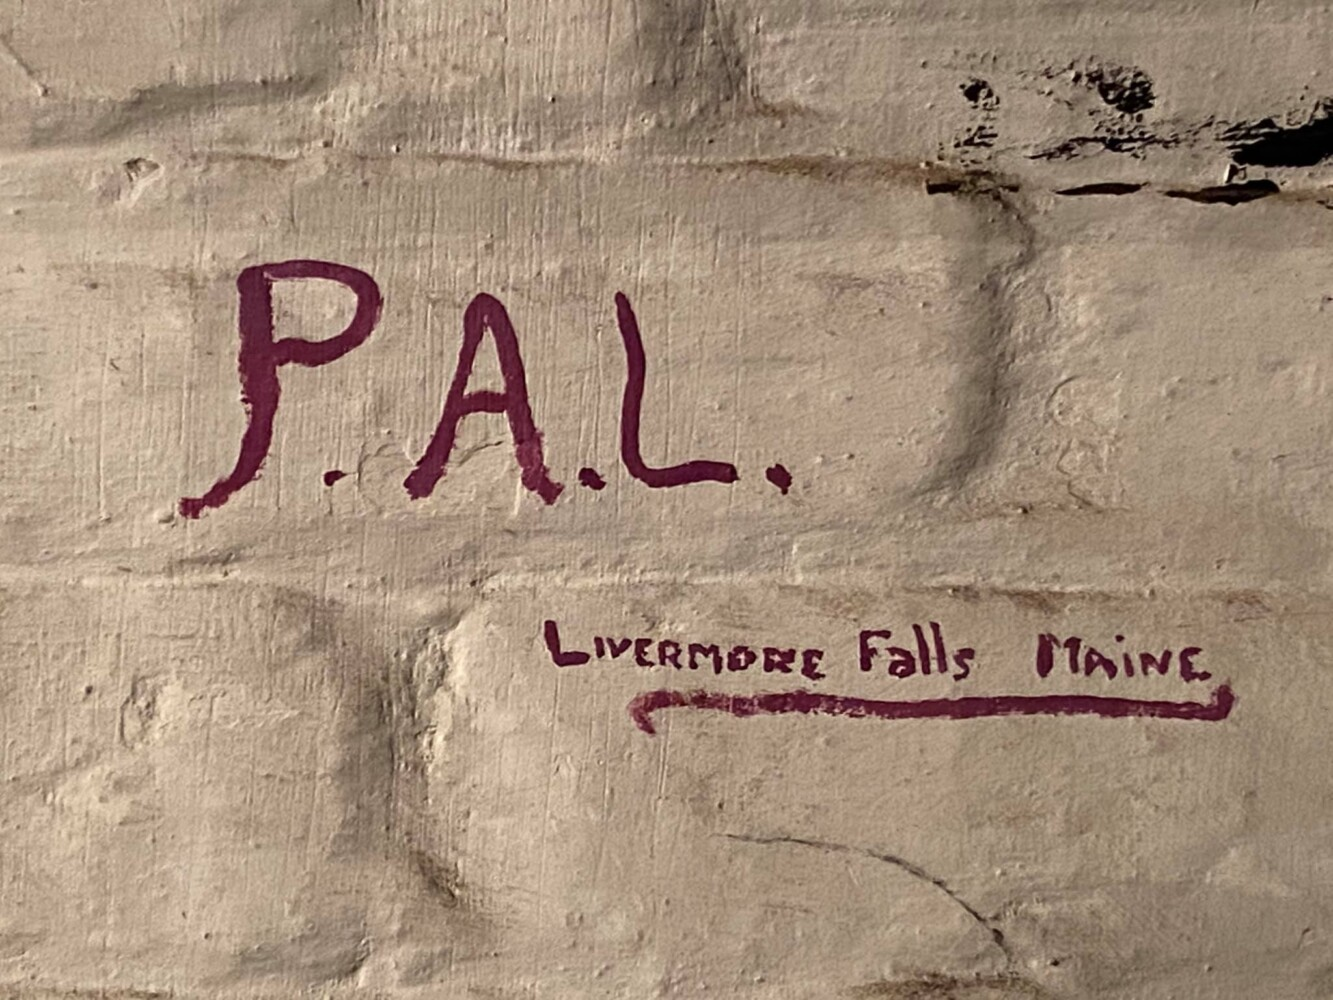 WWII graffiti referencing 'Livermore Falls Maine' uncovered in England | Lewiston Sun Journal